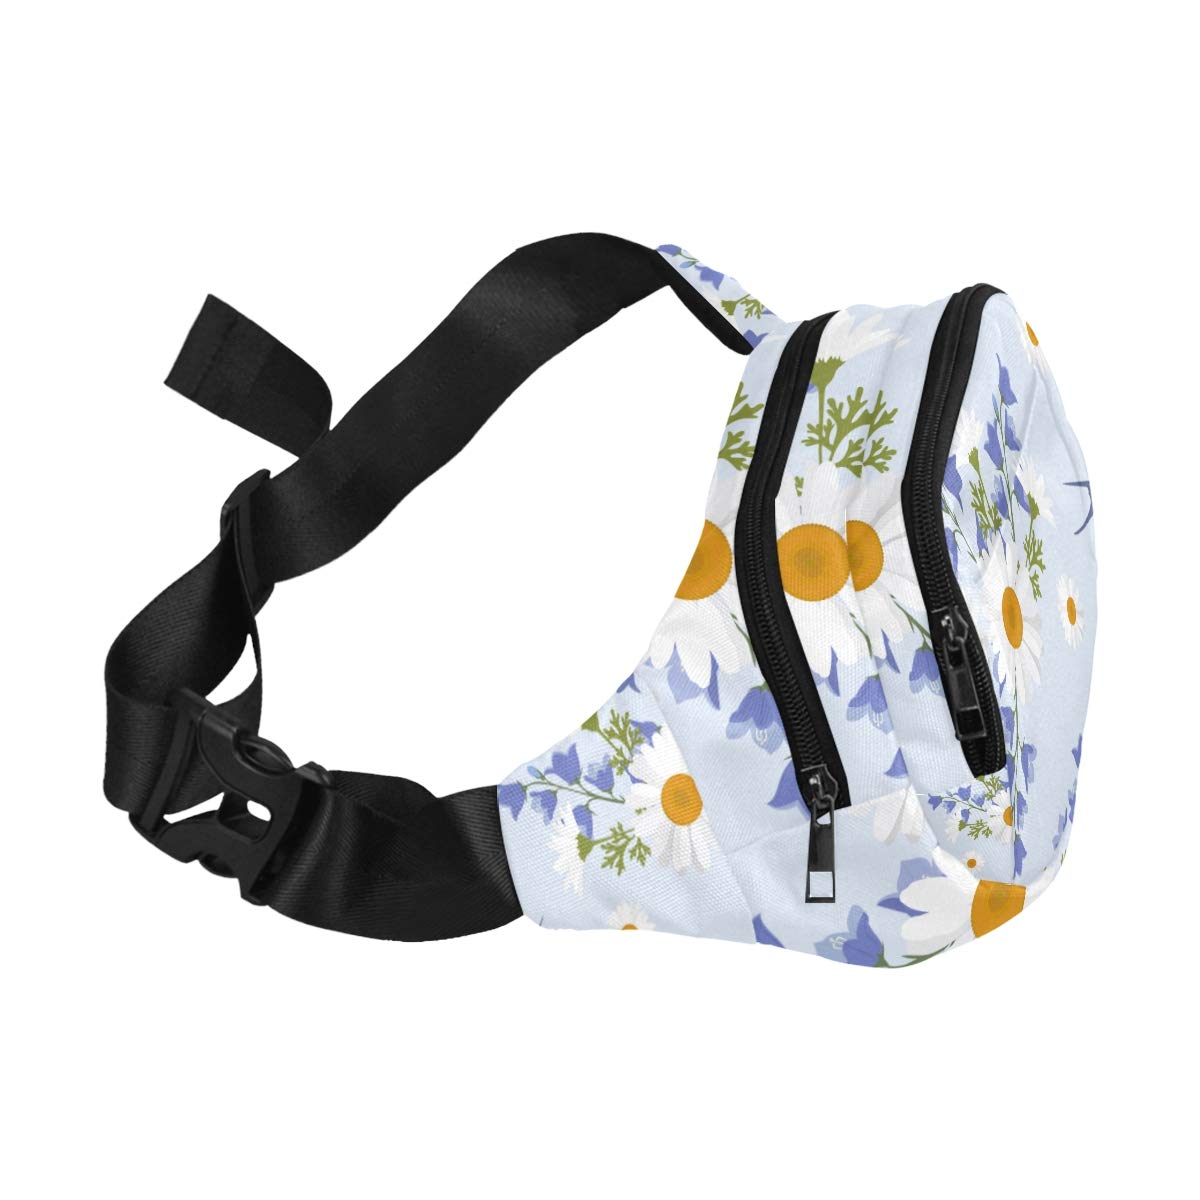 Cute Swallow Birds And Flowers Fenny Packs Waist Bags Adjustable Belt Waterproof Nylon Travel Running Sport Vacation Party For Men Women Boys Girls Kids